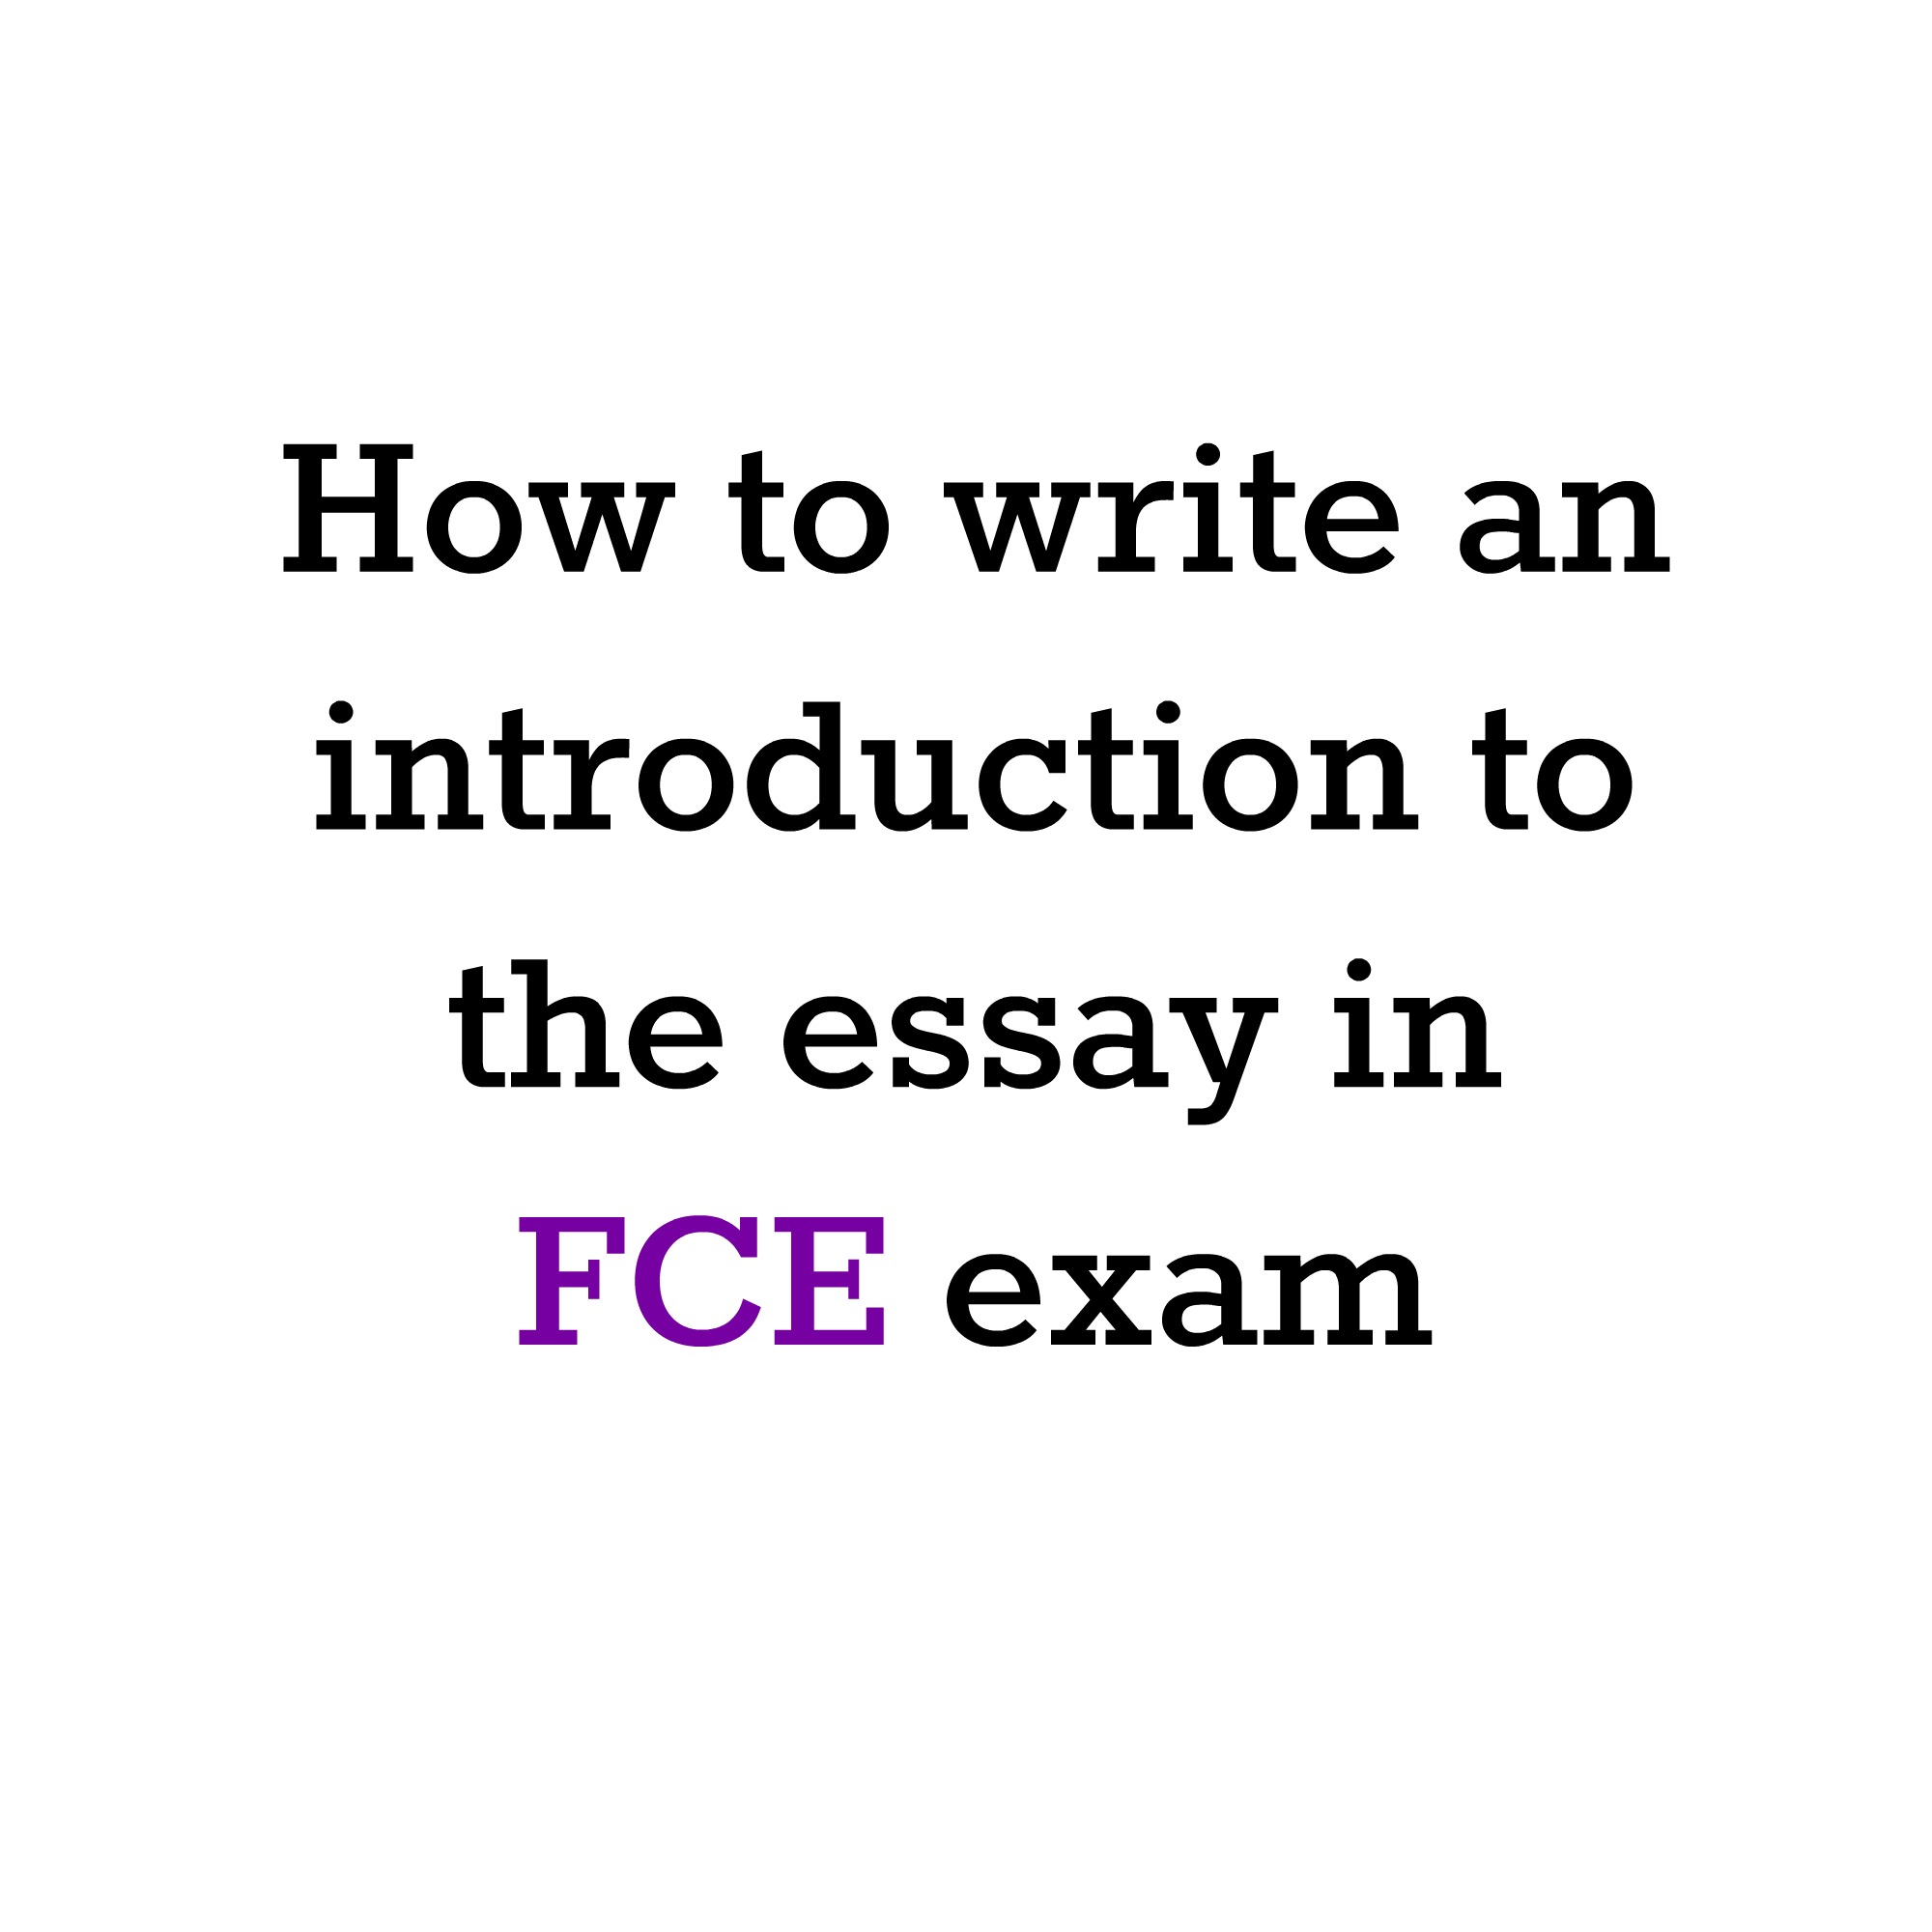 fce writing part essay b english exam help how to write an introduction to the essay in fce exam